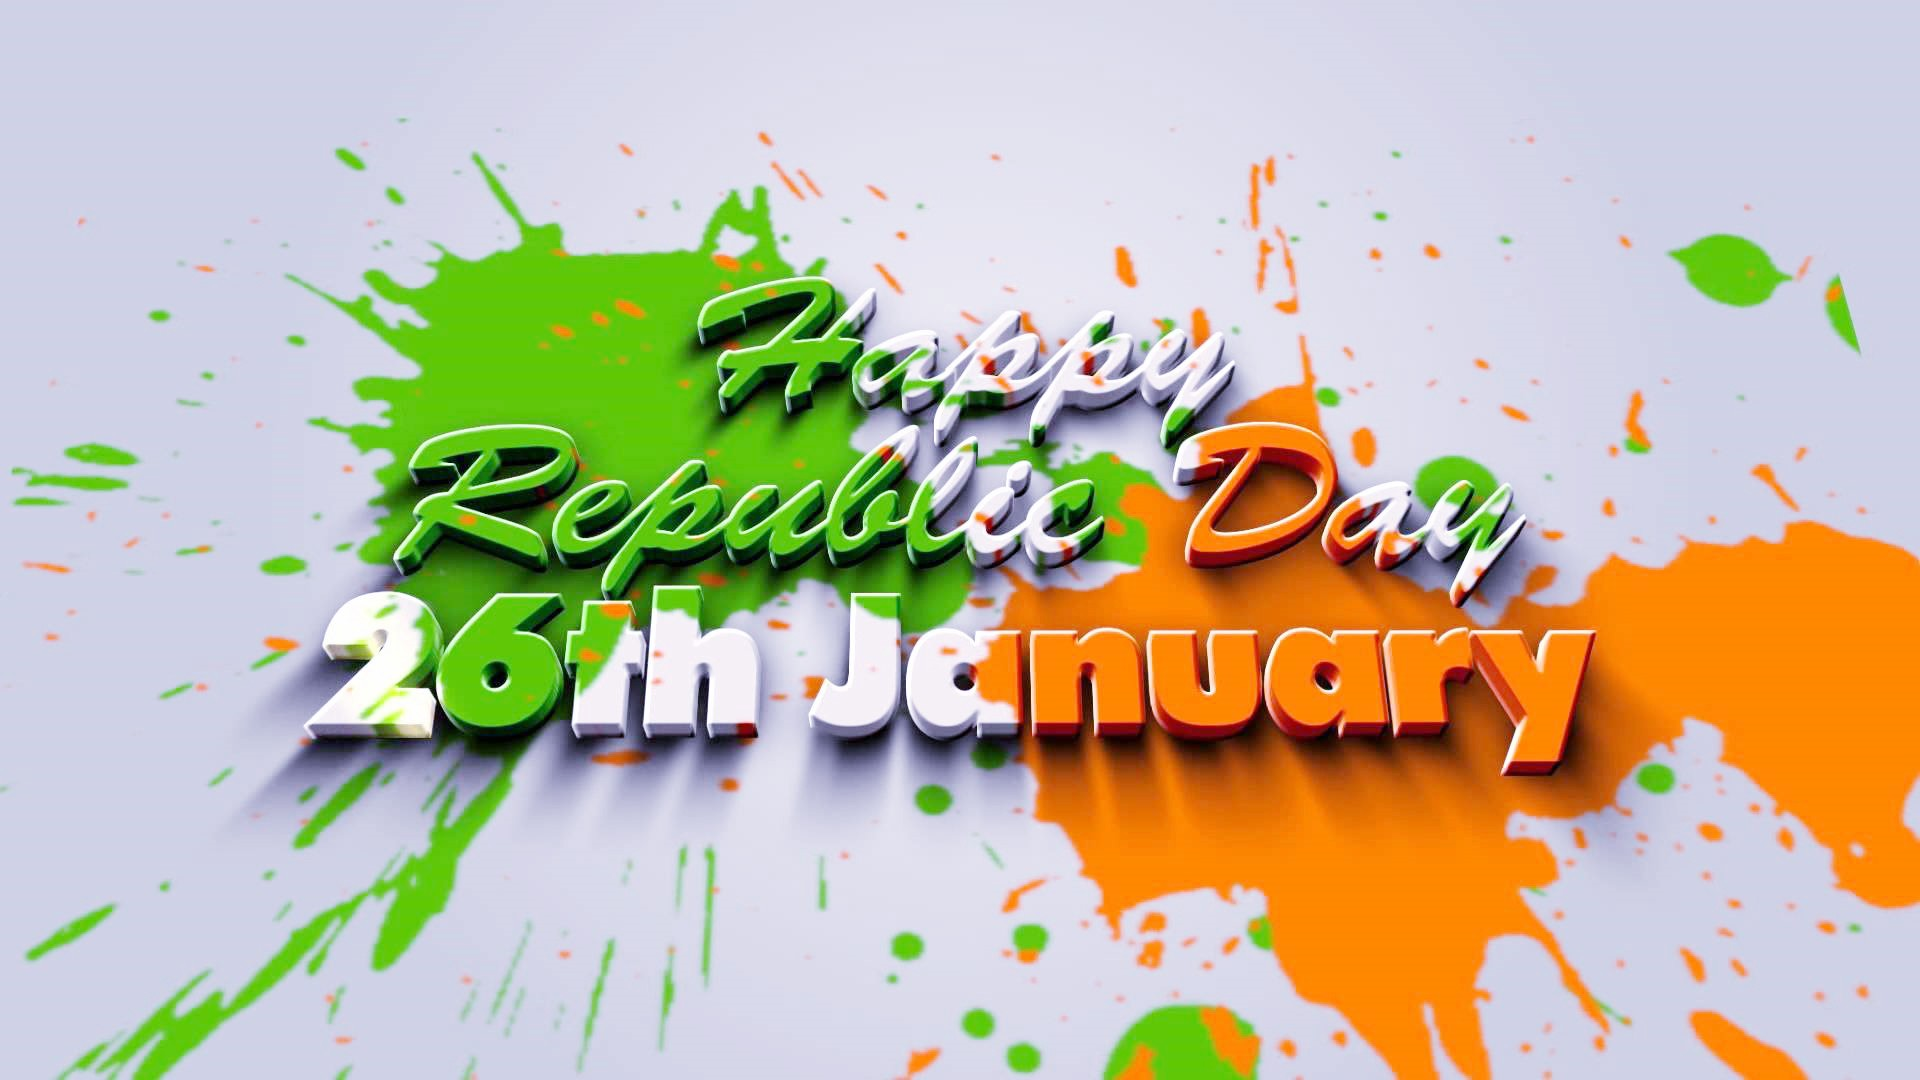 Fr fr free january 2017 desktop wallpaper - 26 Jan India Republic Day Images For Whatsapp Dp Profile Wallpapers Download